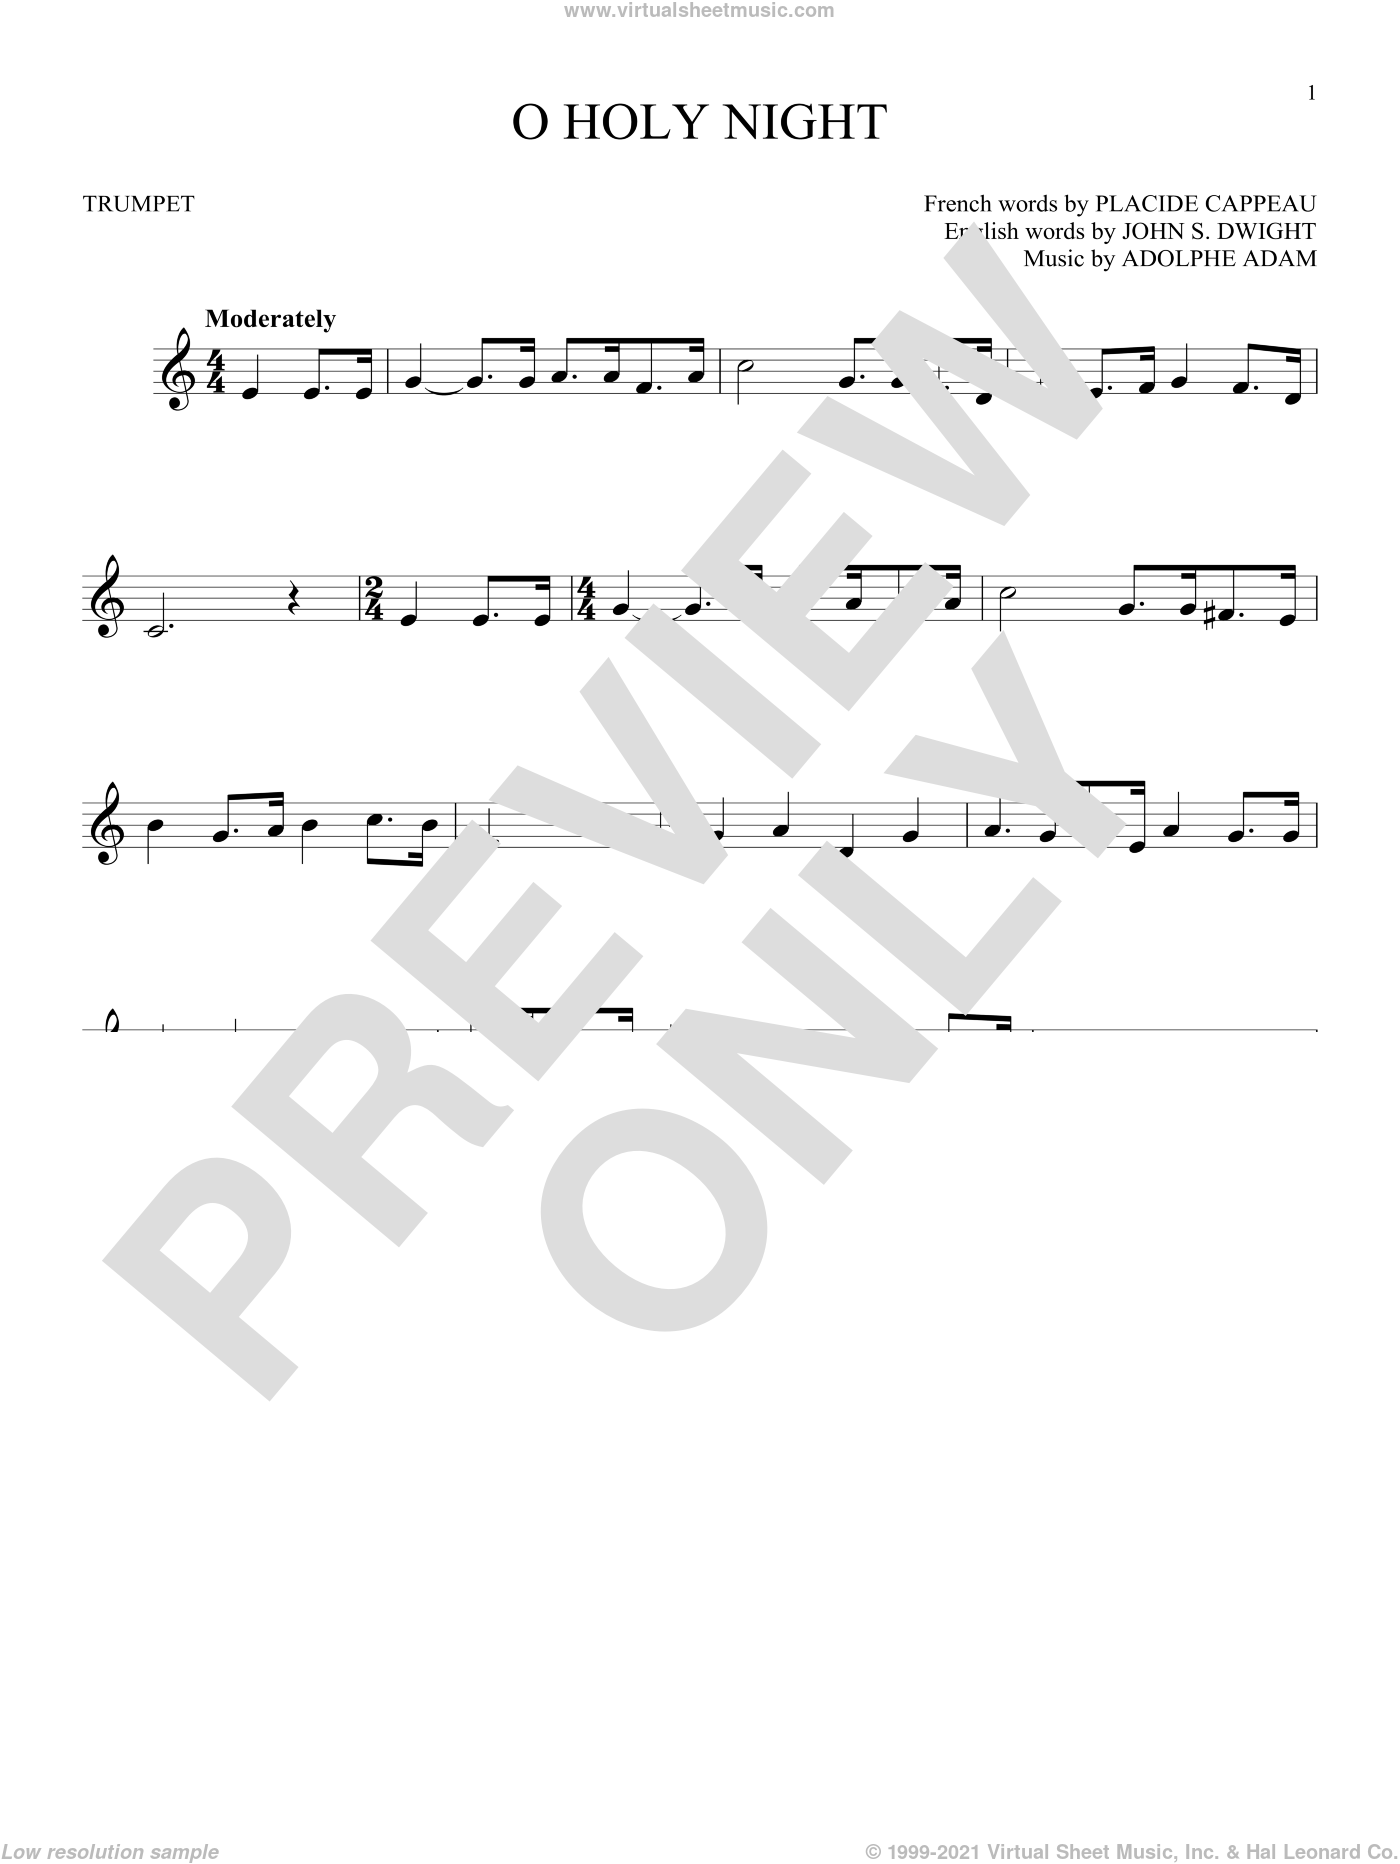 O Holy Night sheet music for trumpet solo by Adolphe Adam, John S. Dwight (trans.) and Placide Cappeau  (French), intermediate. Score Image Preview.